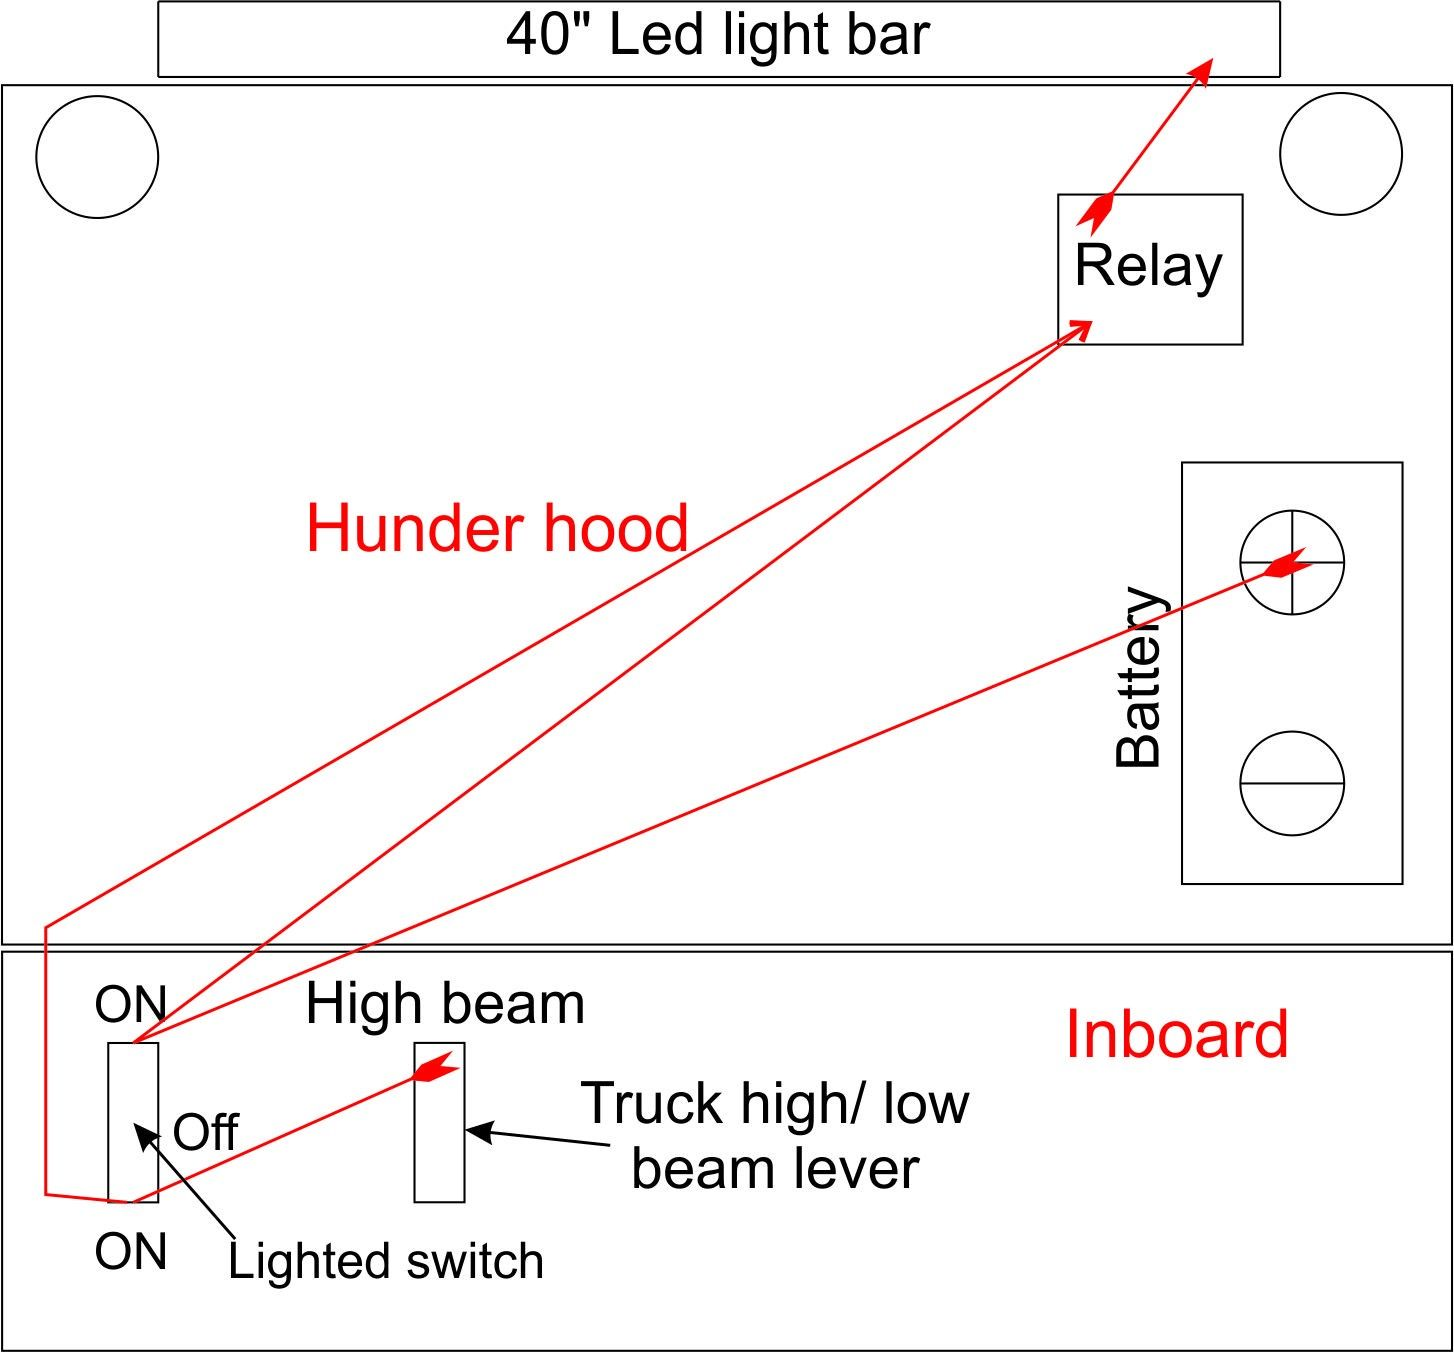 Best Of Wiring Diagram For Light Bar To High Beam